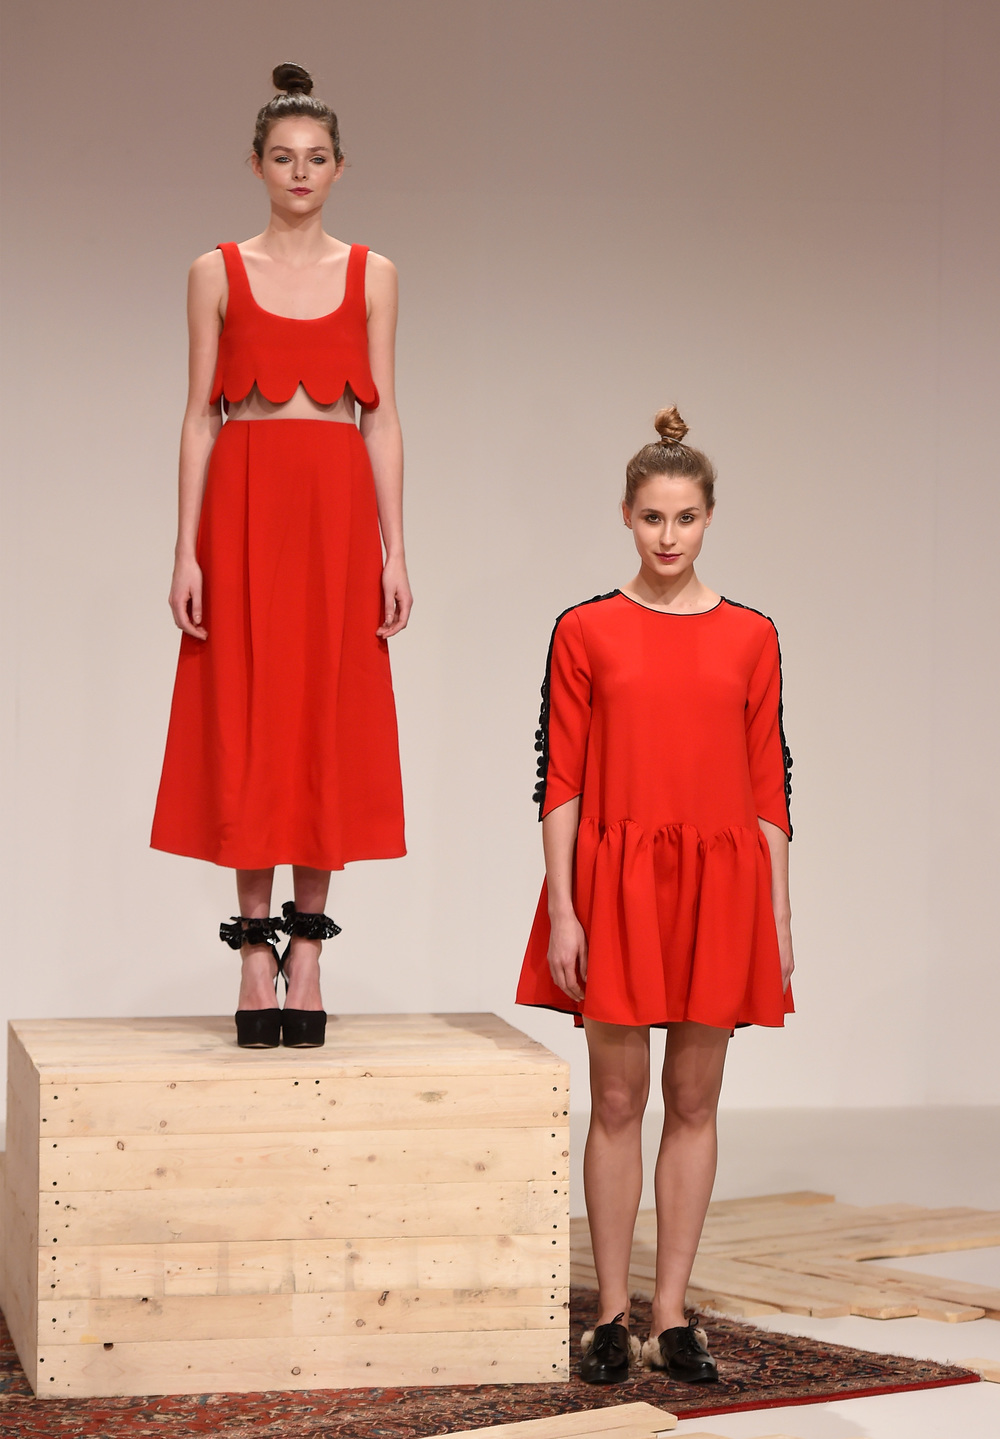 FFWD_Zayan the Label - Presentation_022.JPG